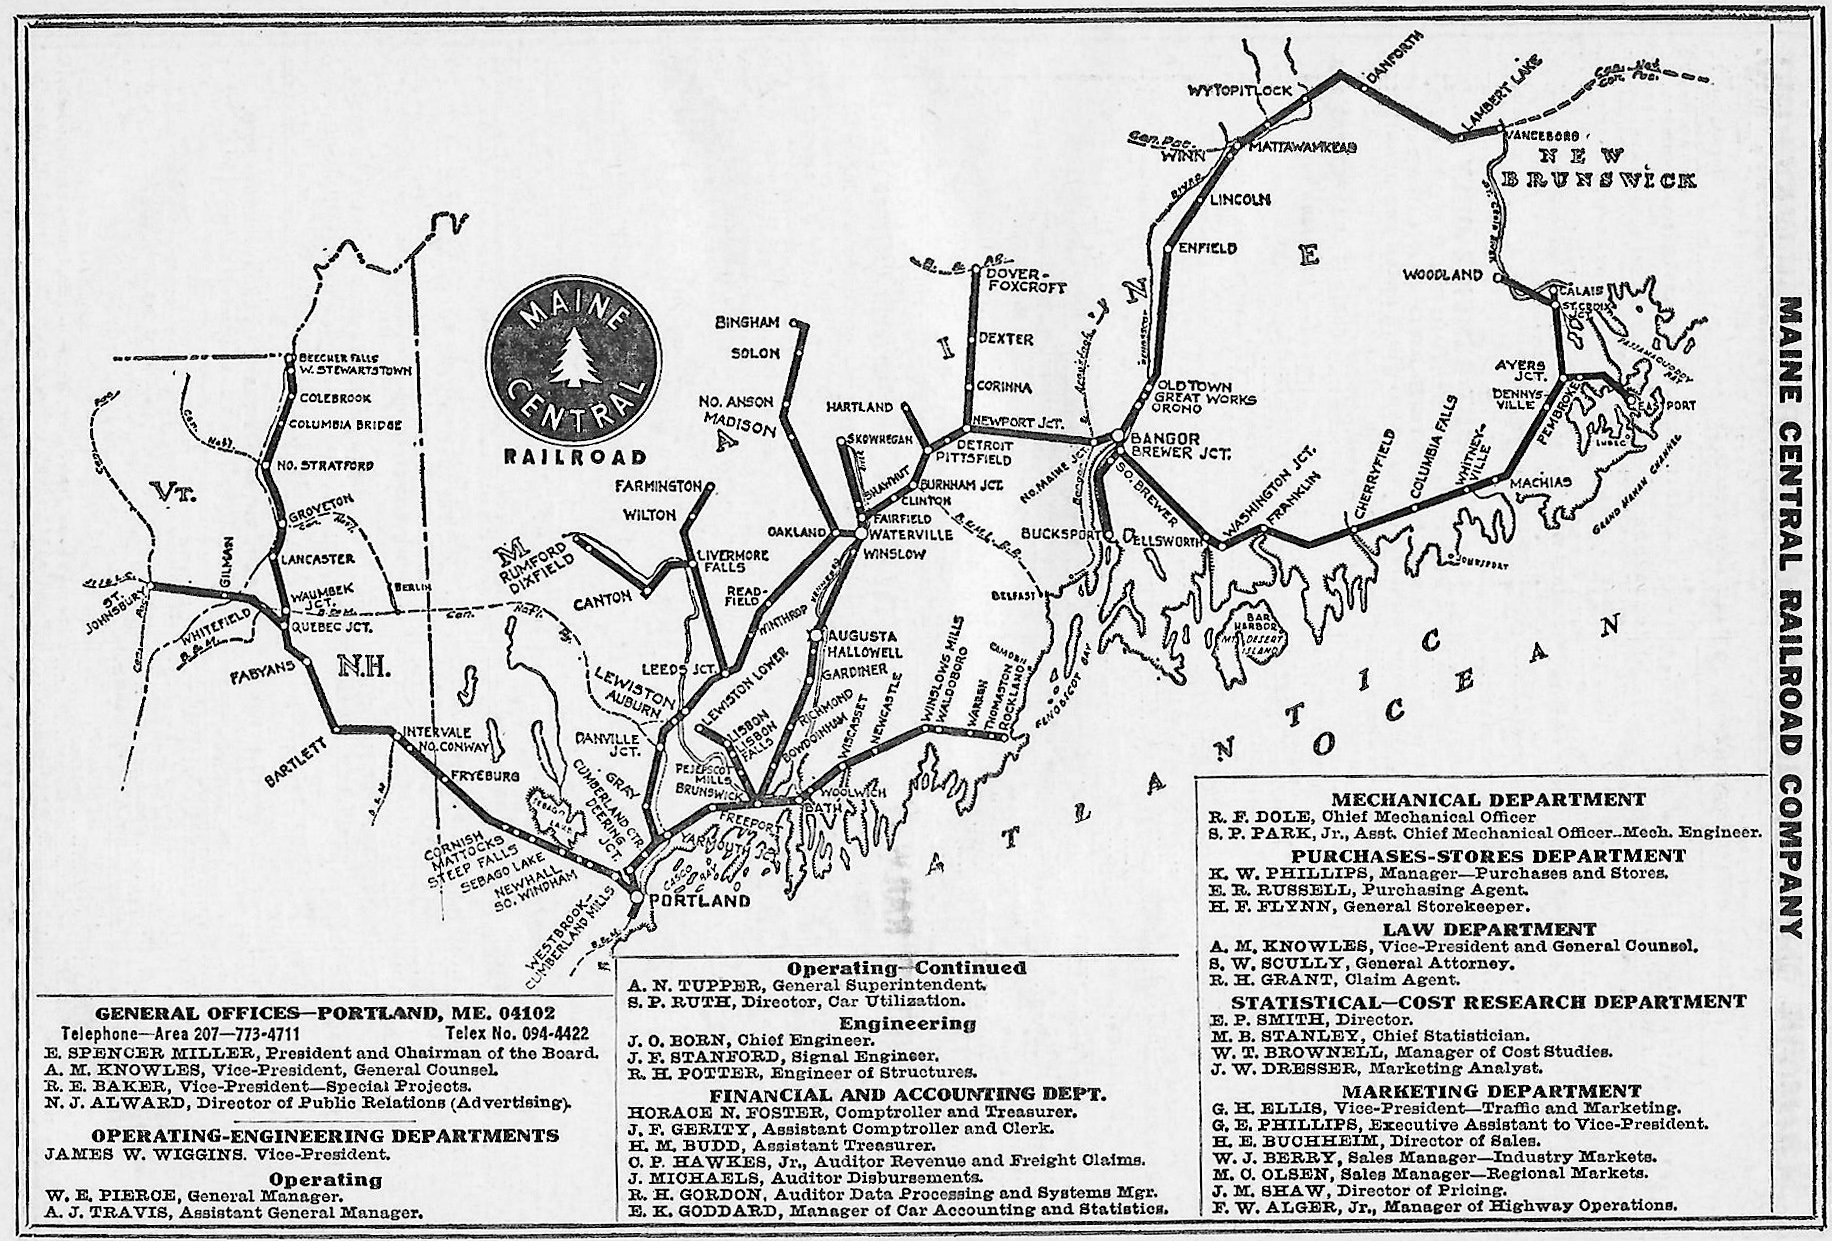 The Maine Central Railroad - Us railway system map